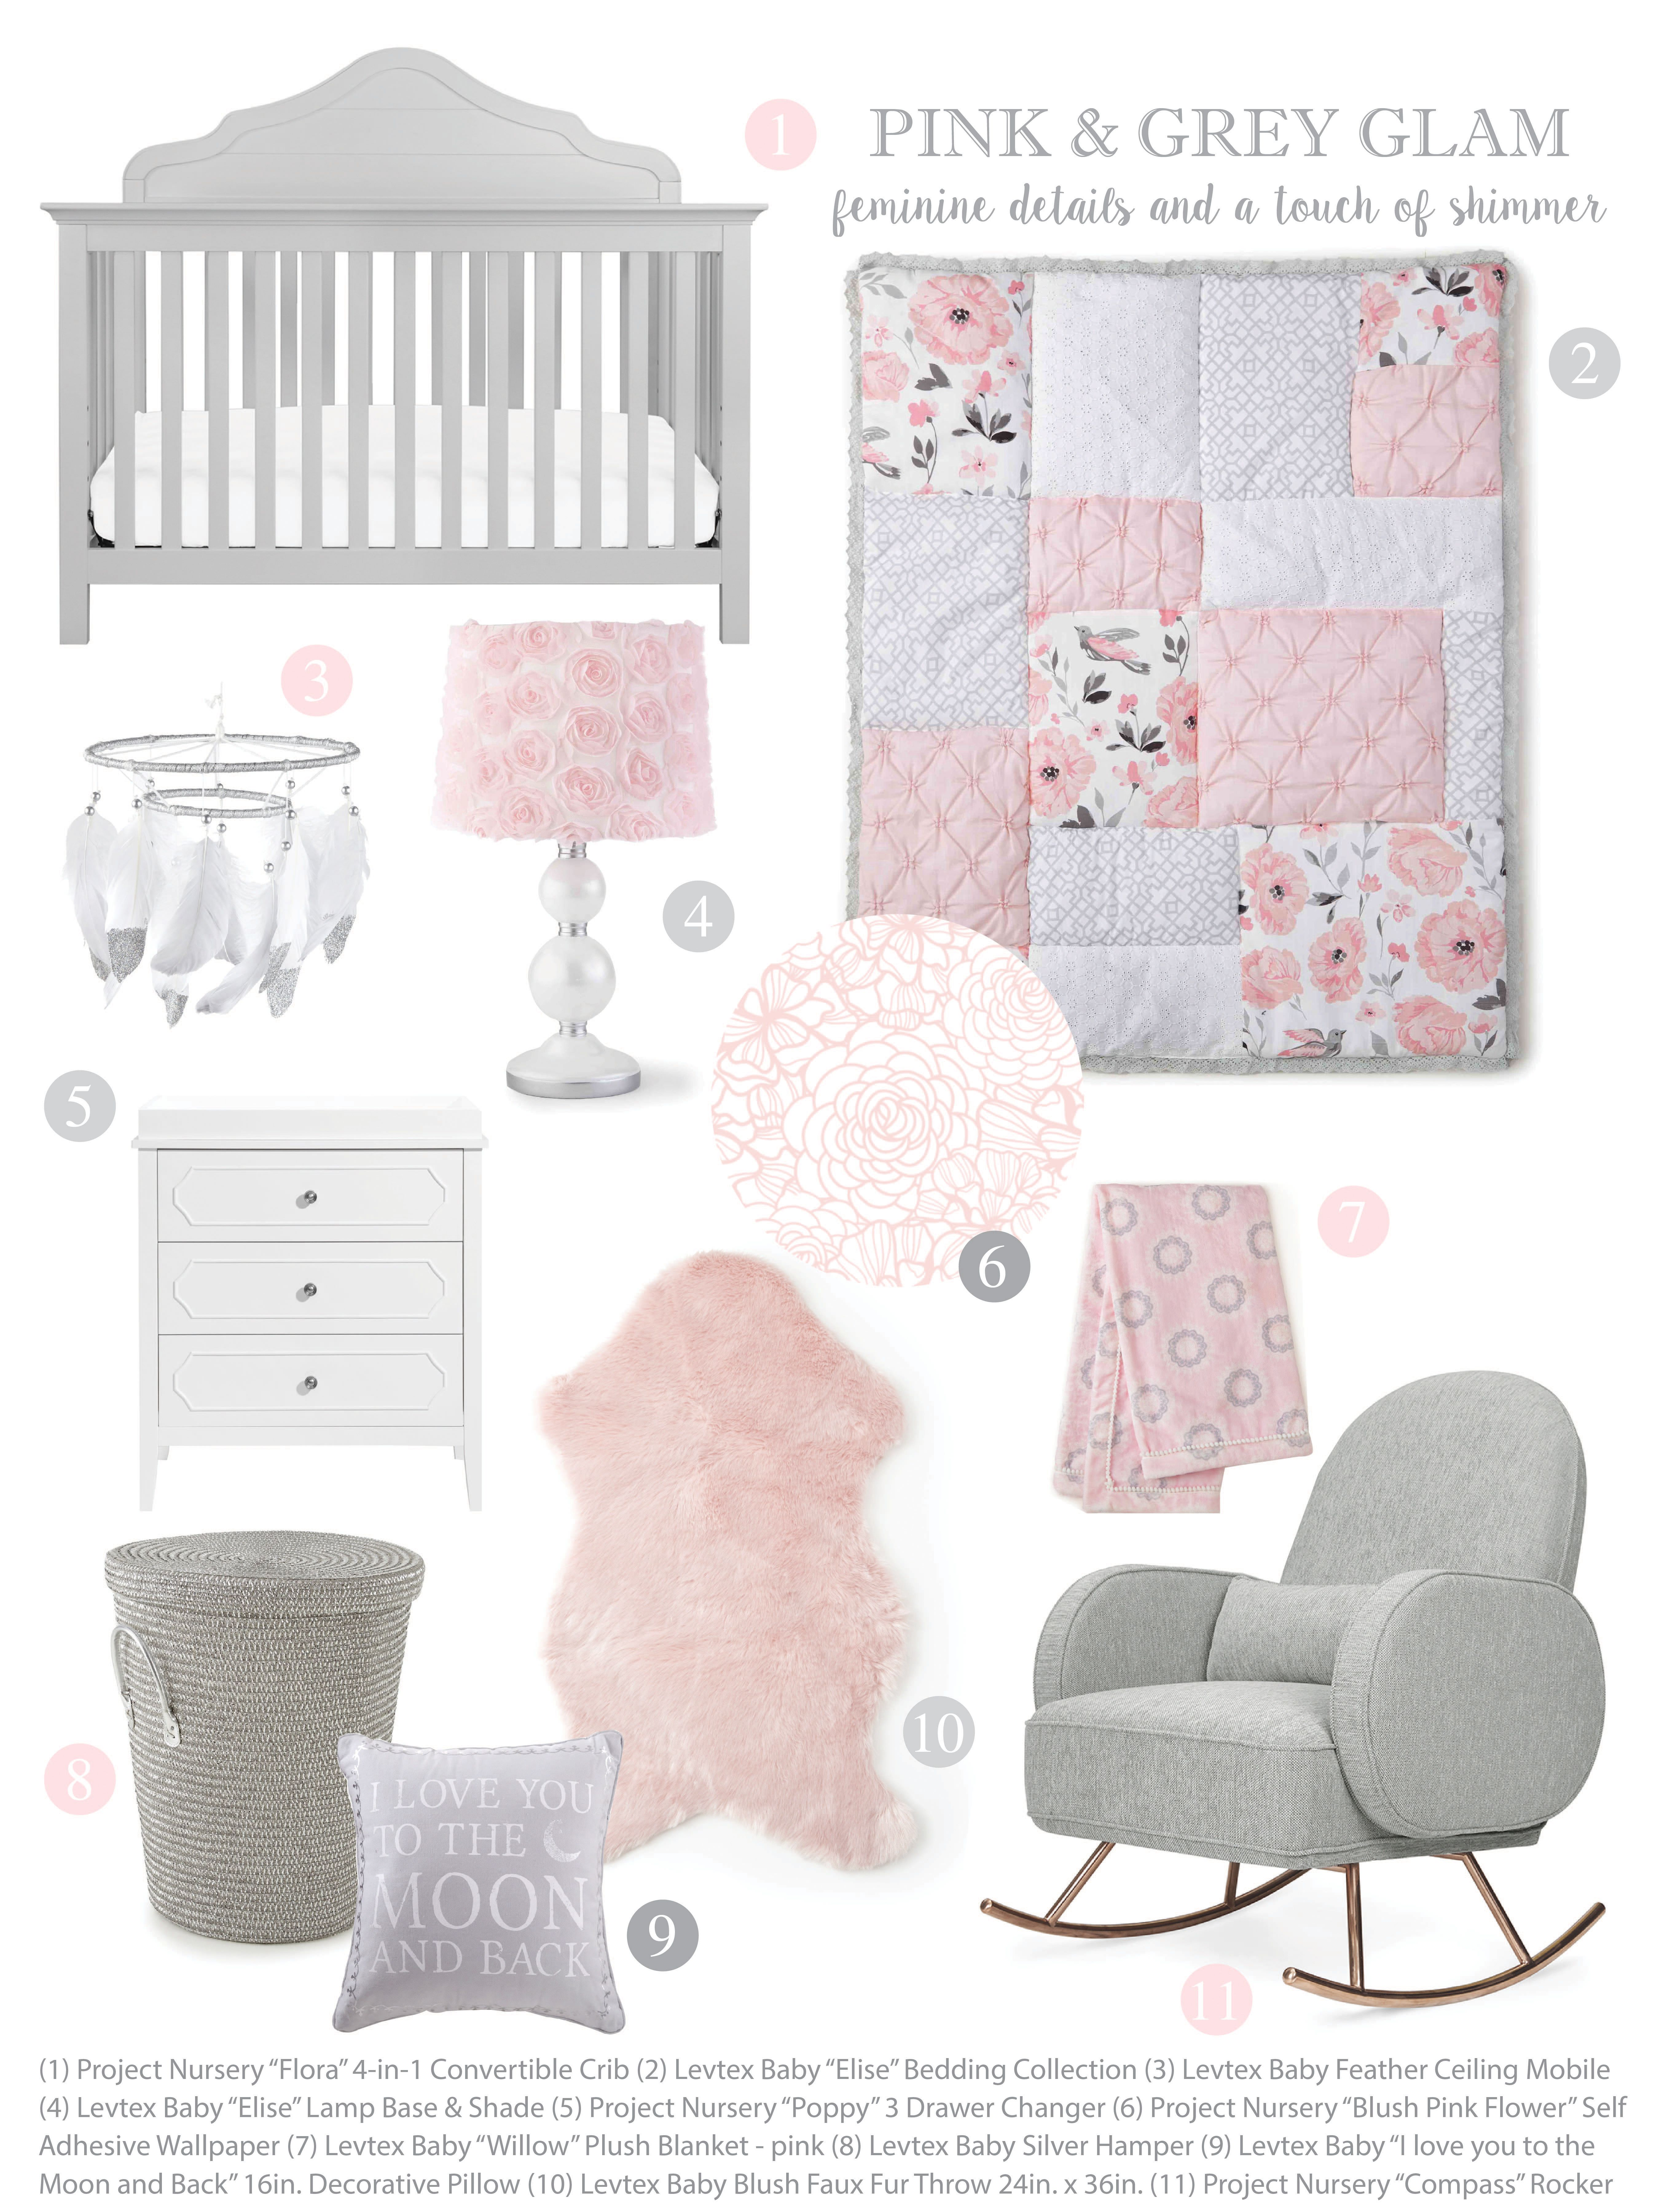 Combine Levtex Baby Elise Bedding With Project Nursery Furniture And Wallpaper